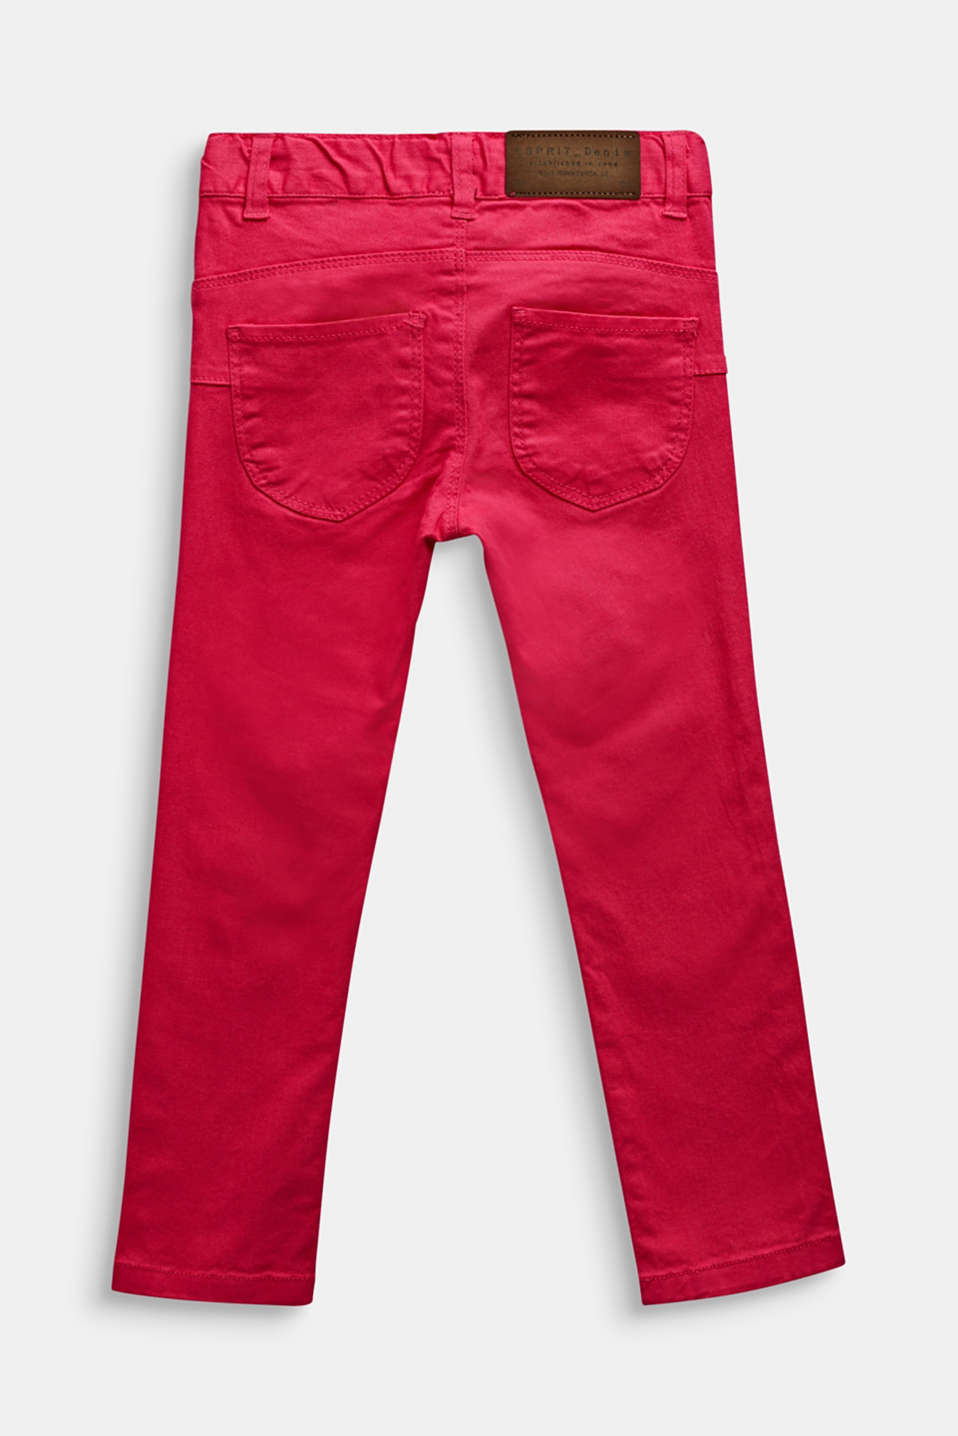 Coloured stretch jeans, adjustable waistband, CANDY PINK, detail image number 1